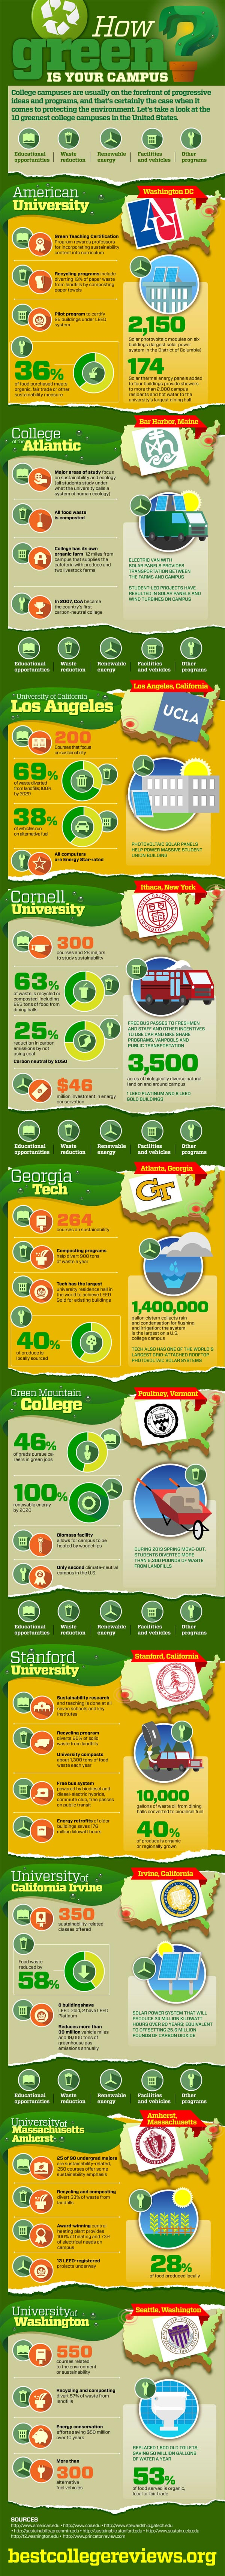 10 Greenest Campuses in US-Infographic